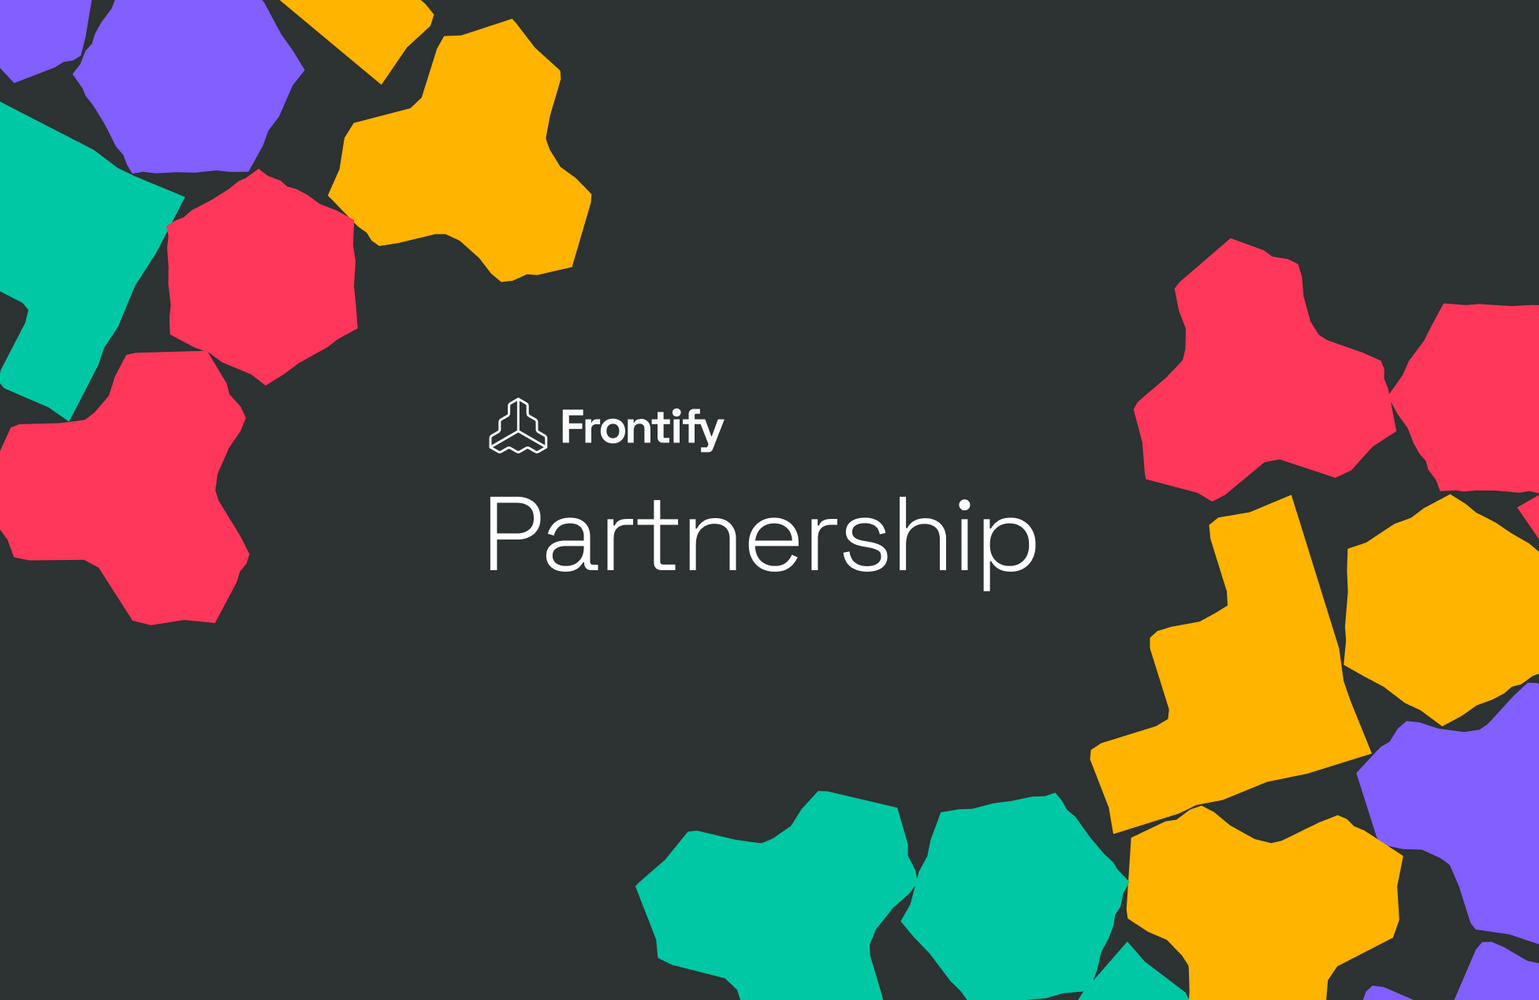 Frontify's Launching a New Partner Program